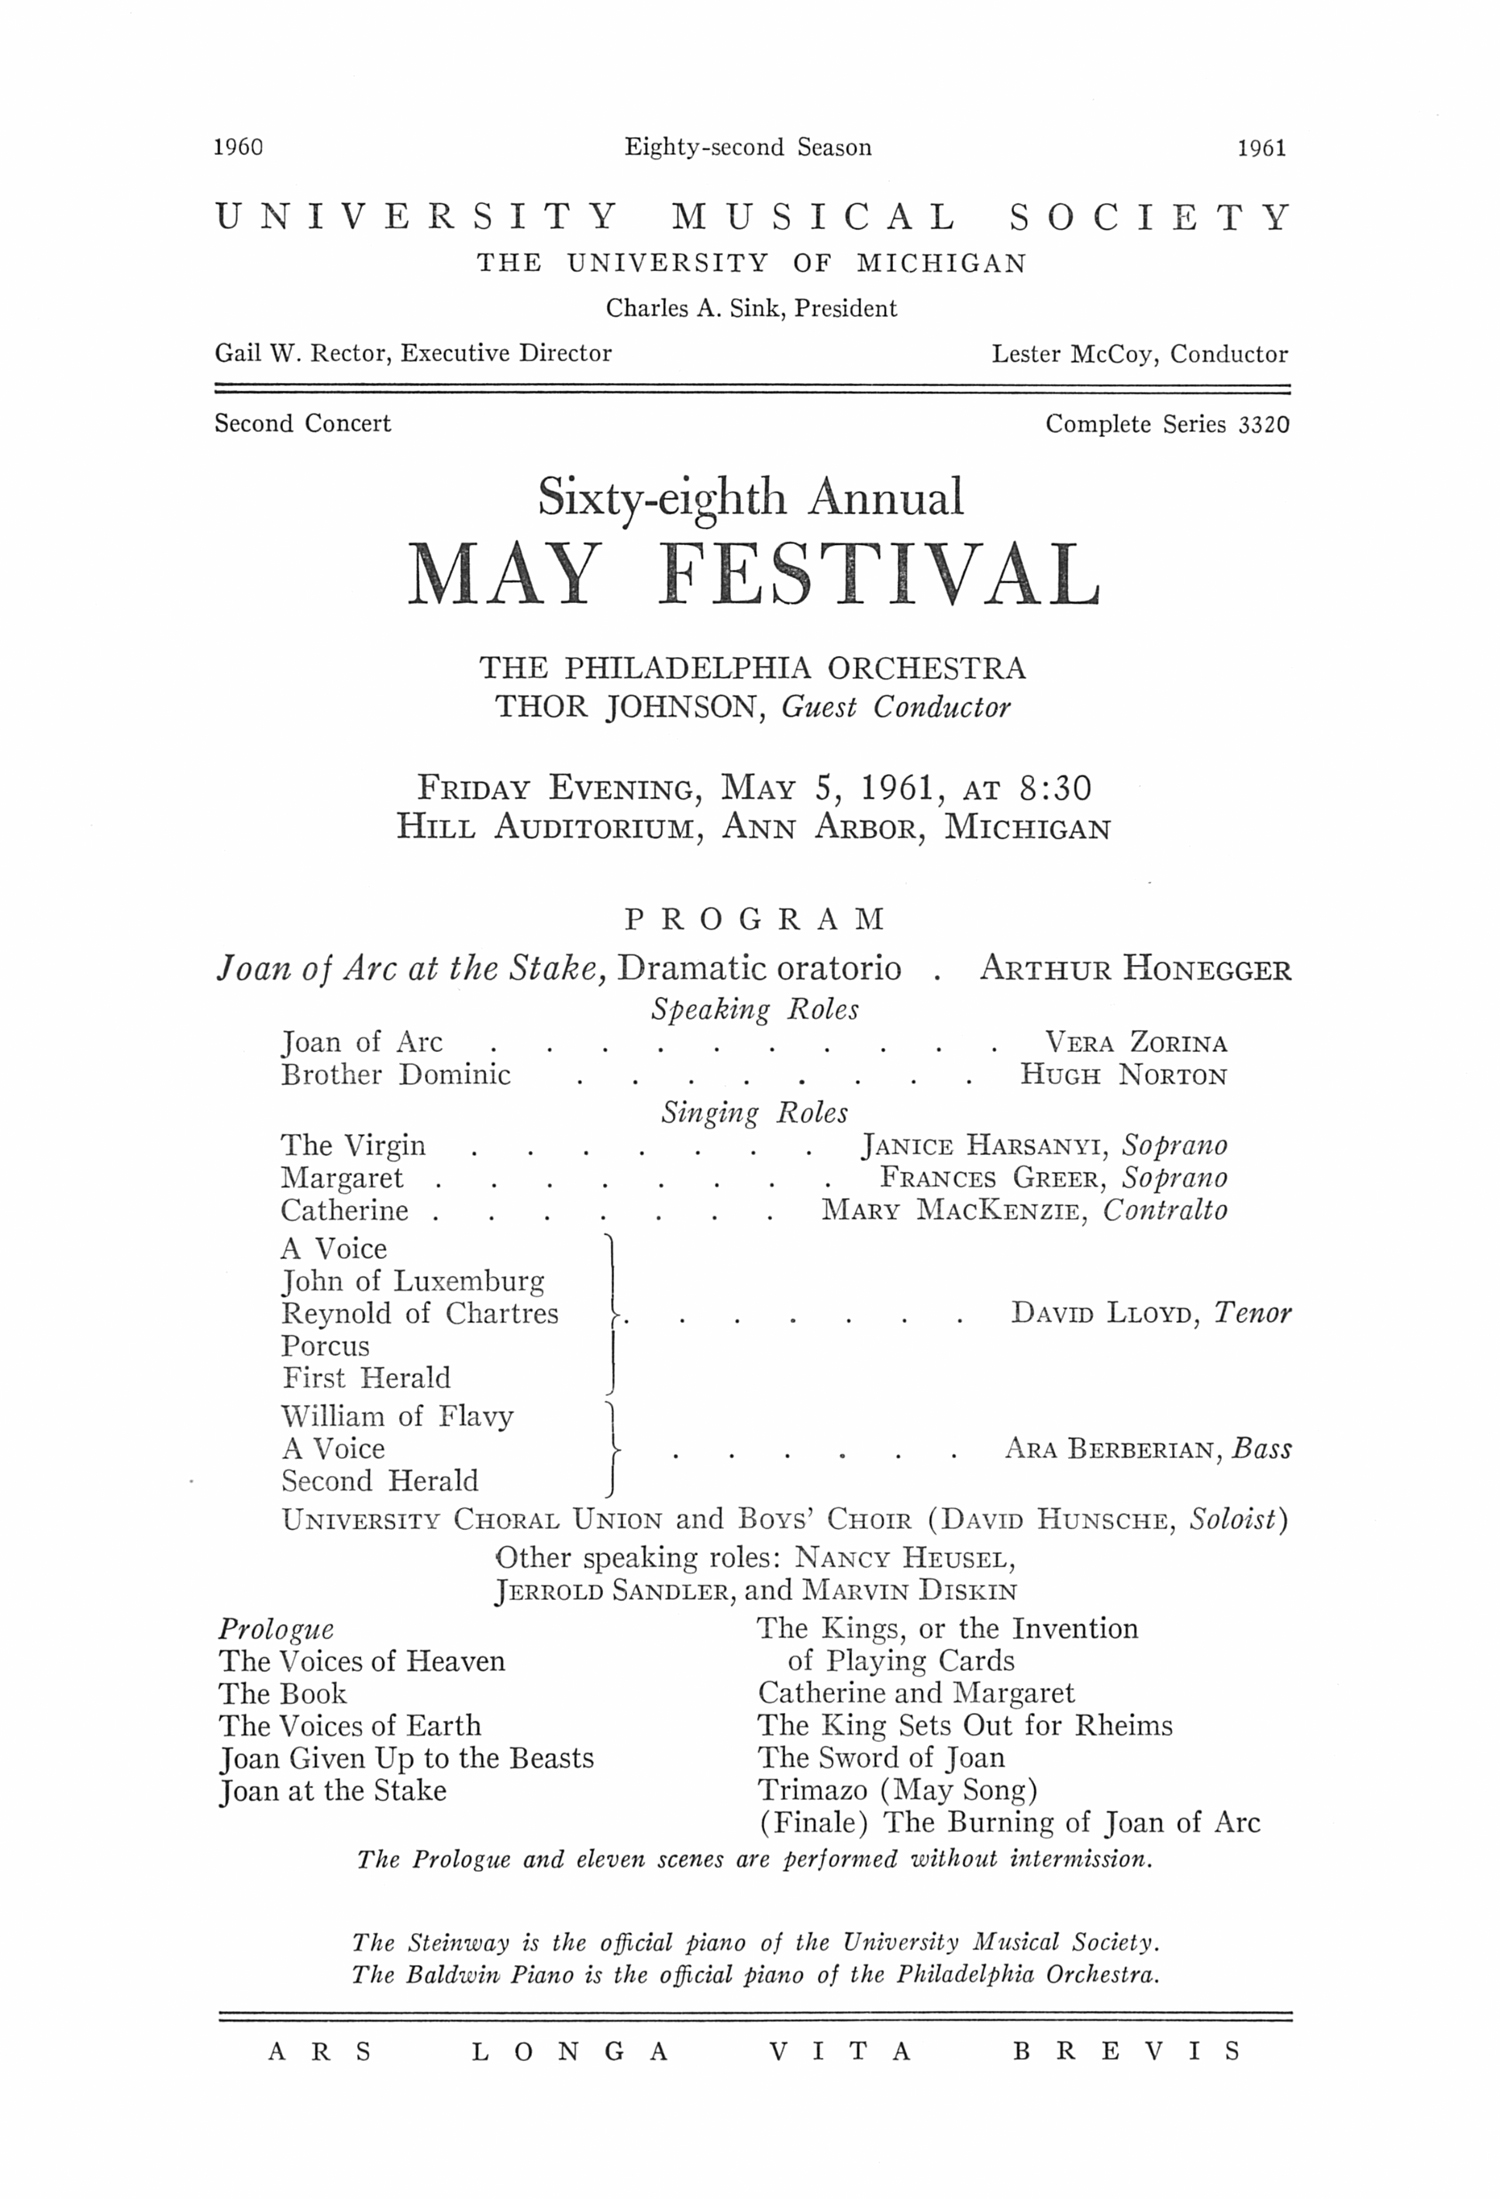 UMS Concert Program, May 5, 1961: Sixty-eighth Annual May Festival -- The Philadelphia Orchestra image